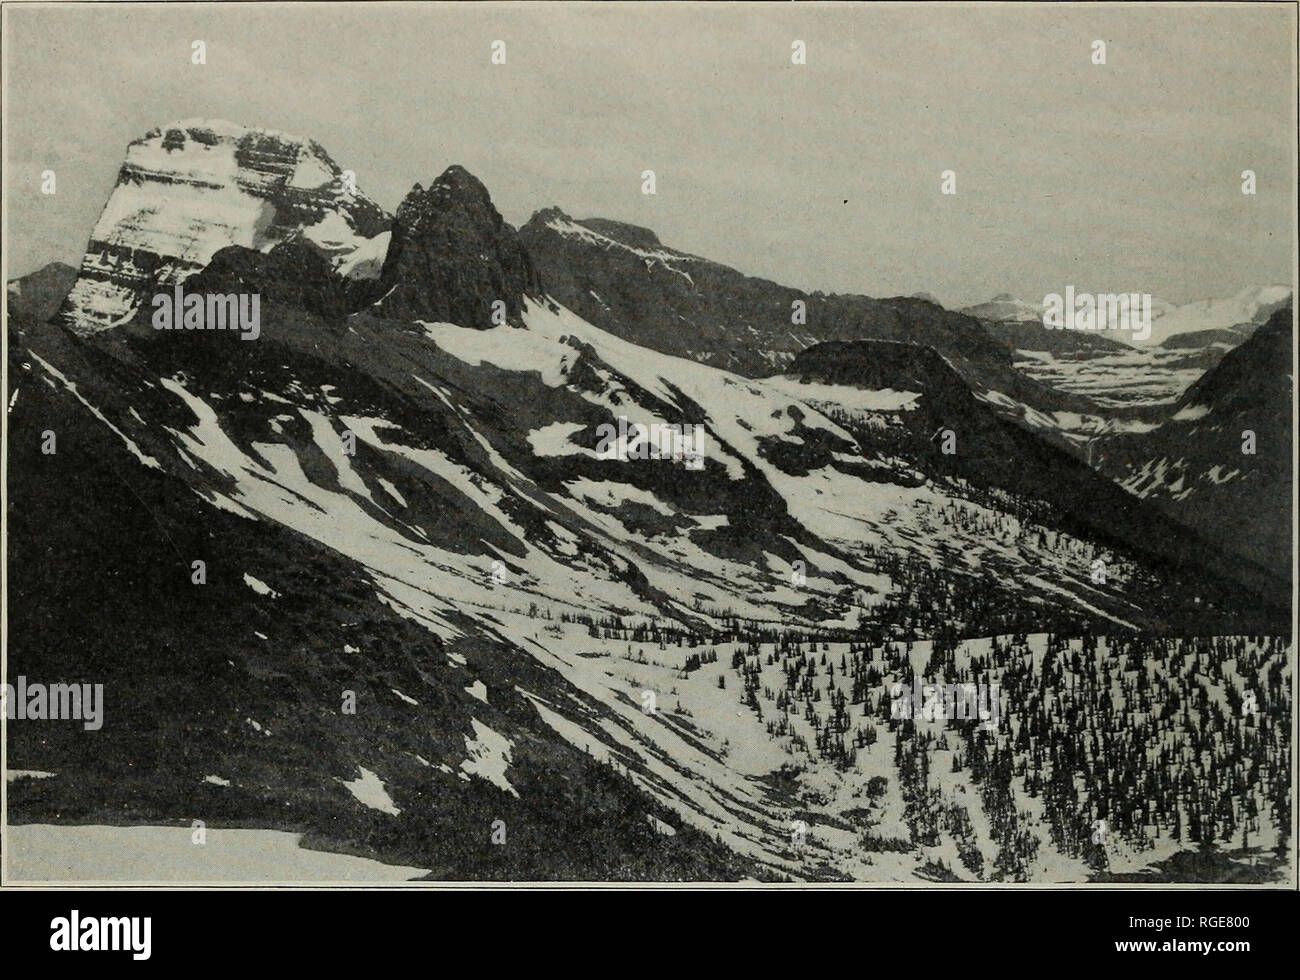 """. Bulletin of the Geological Society of America. Geology. BULL. GEOL. SOC. AM. VOL 13, 19 1, PL. 5"""". Figure 1.—Panorama from Swift Current Pass, Lewis Range Looking south by east. East half from Gould on left to Stimpson and Blackfoot far off on right. Foreground of old valley floor continued in plate 51. Please note that these images are extracted from scanned page images that may have been digitally enhanced for readability - coloration and appearance of these illustrations may not perfectly resemble the original work.. Geological Society of America. [New York : The Society] - Stock Image"""